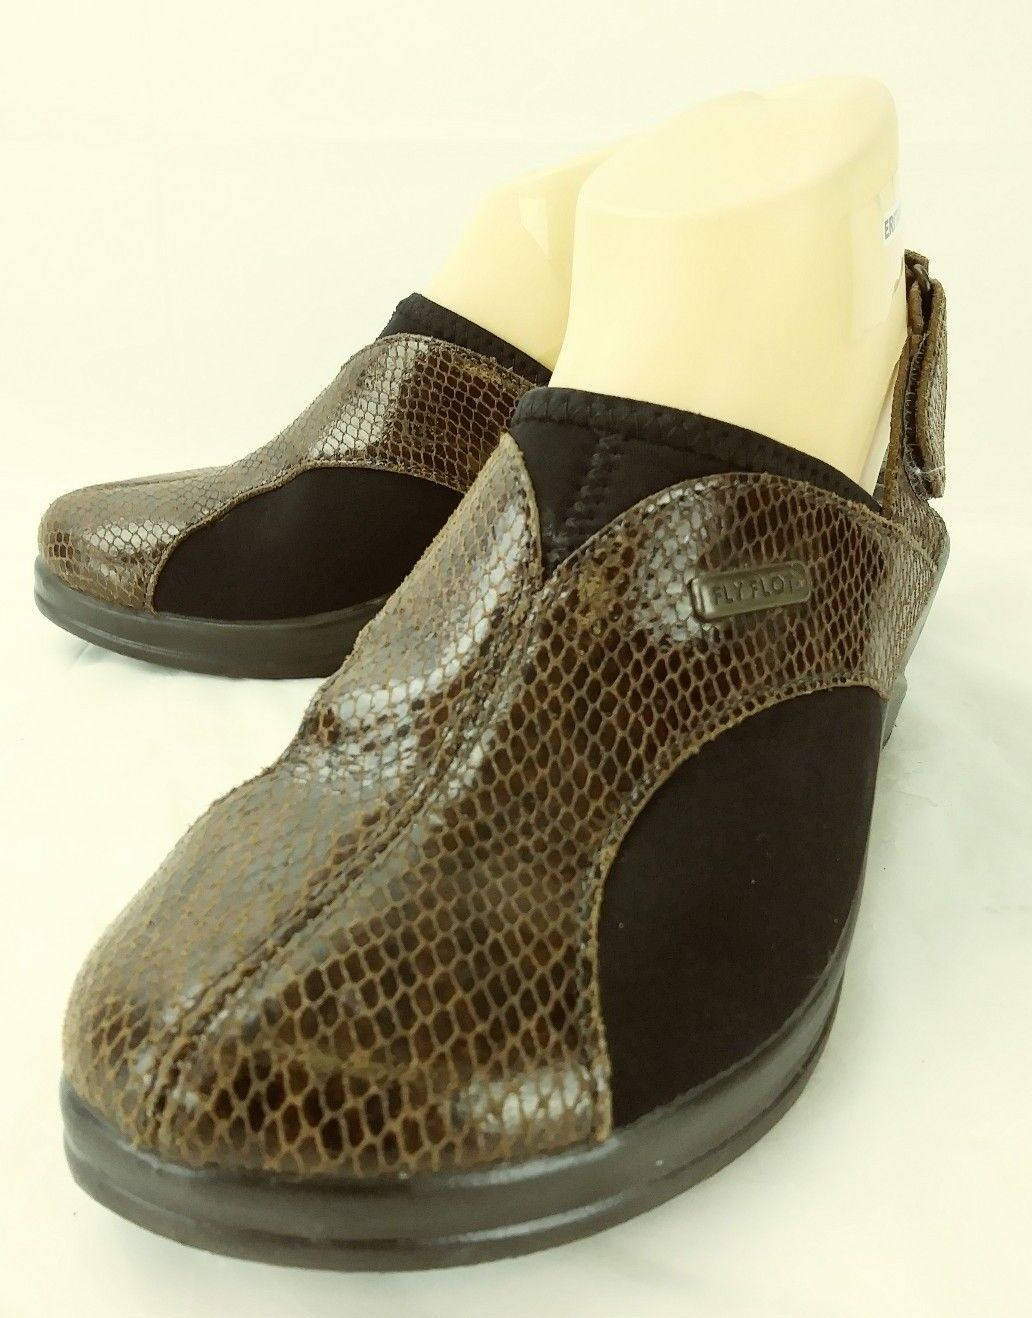 Fly Flot Wos shoes EU38 US7 Snake Print Brown Leather Black Slingback Wedge 5211